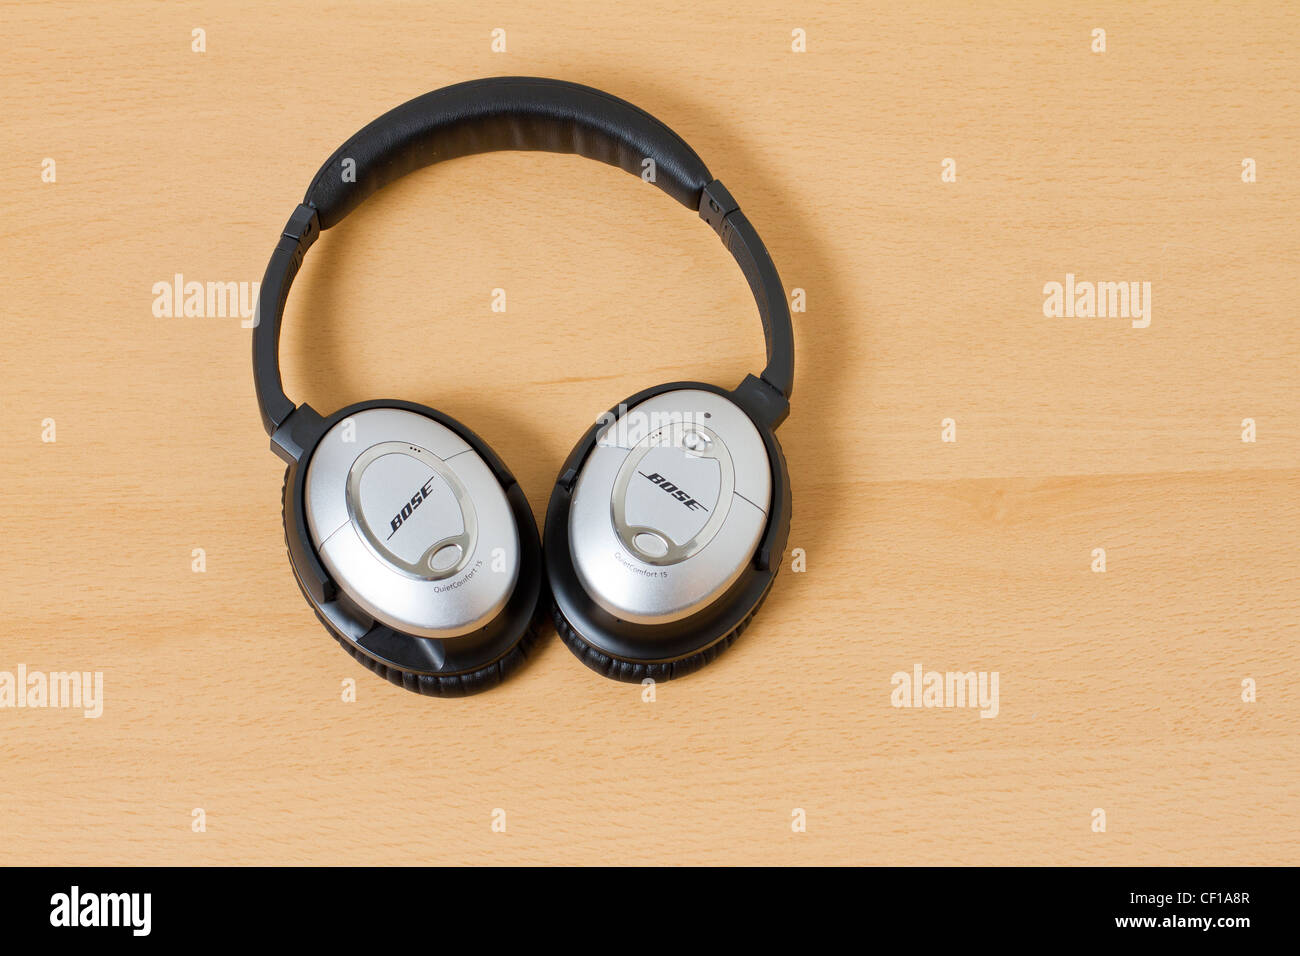 Noise canceling headphones Bose on a wooden background - Stock Image